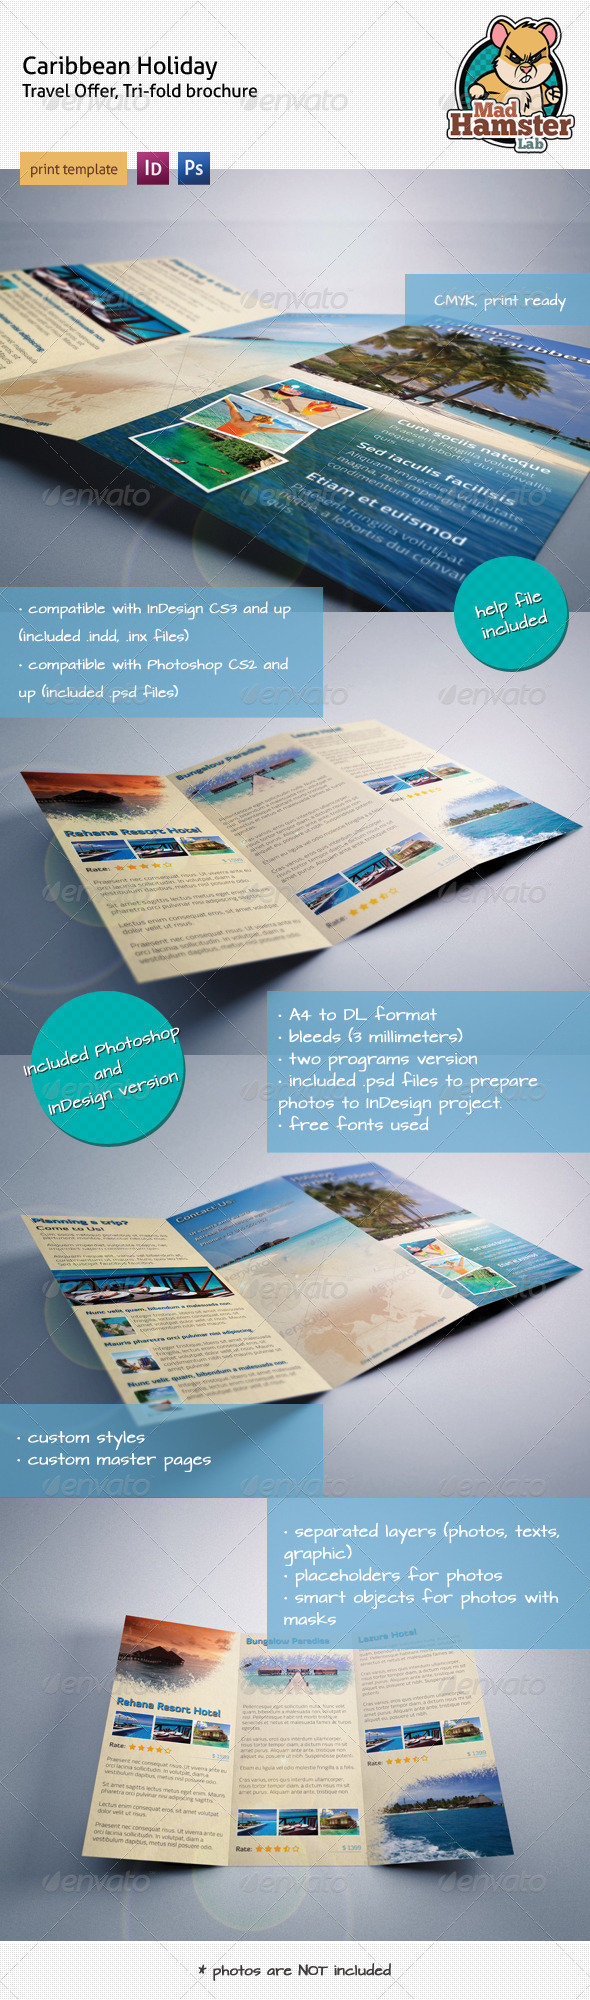 Caribbean Holiday, Travel Offer, Tri-fold Brochure